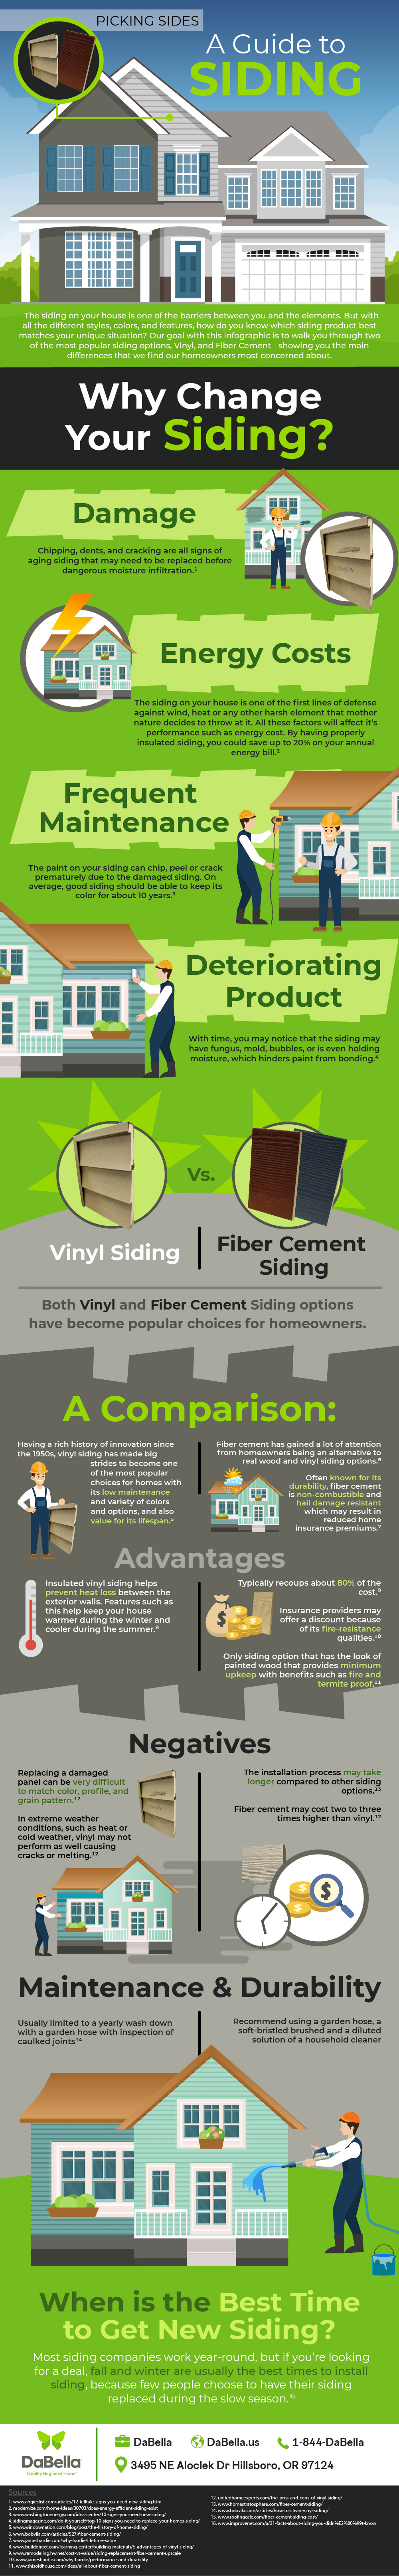 Siding infographic